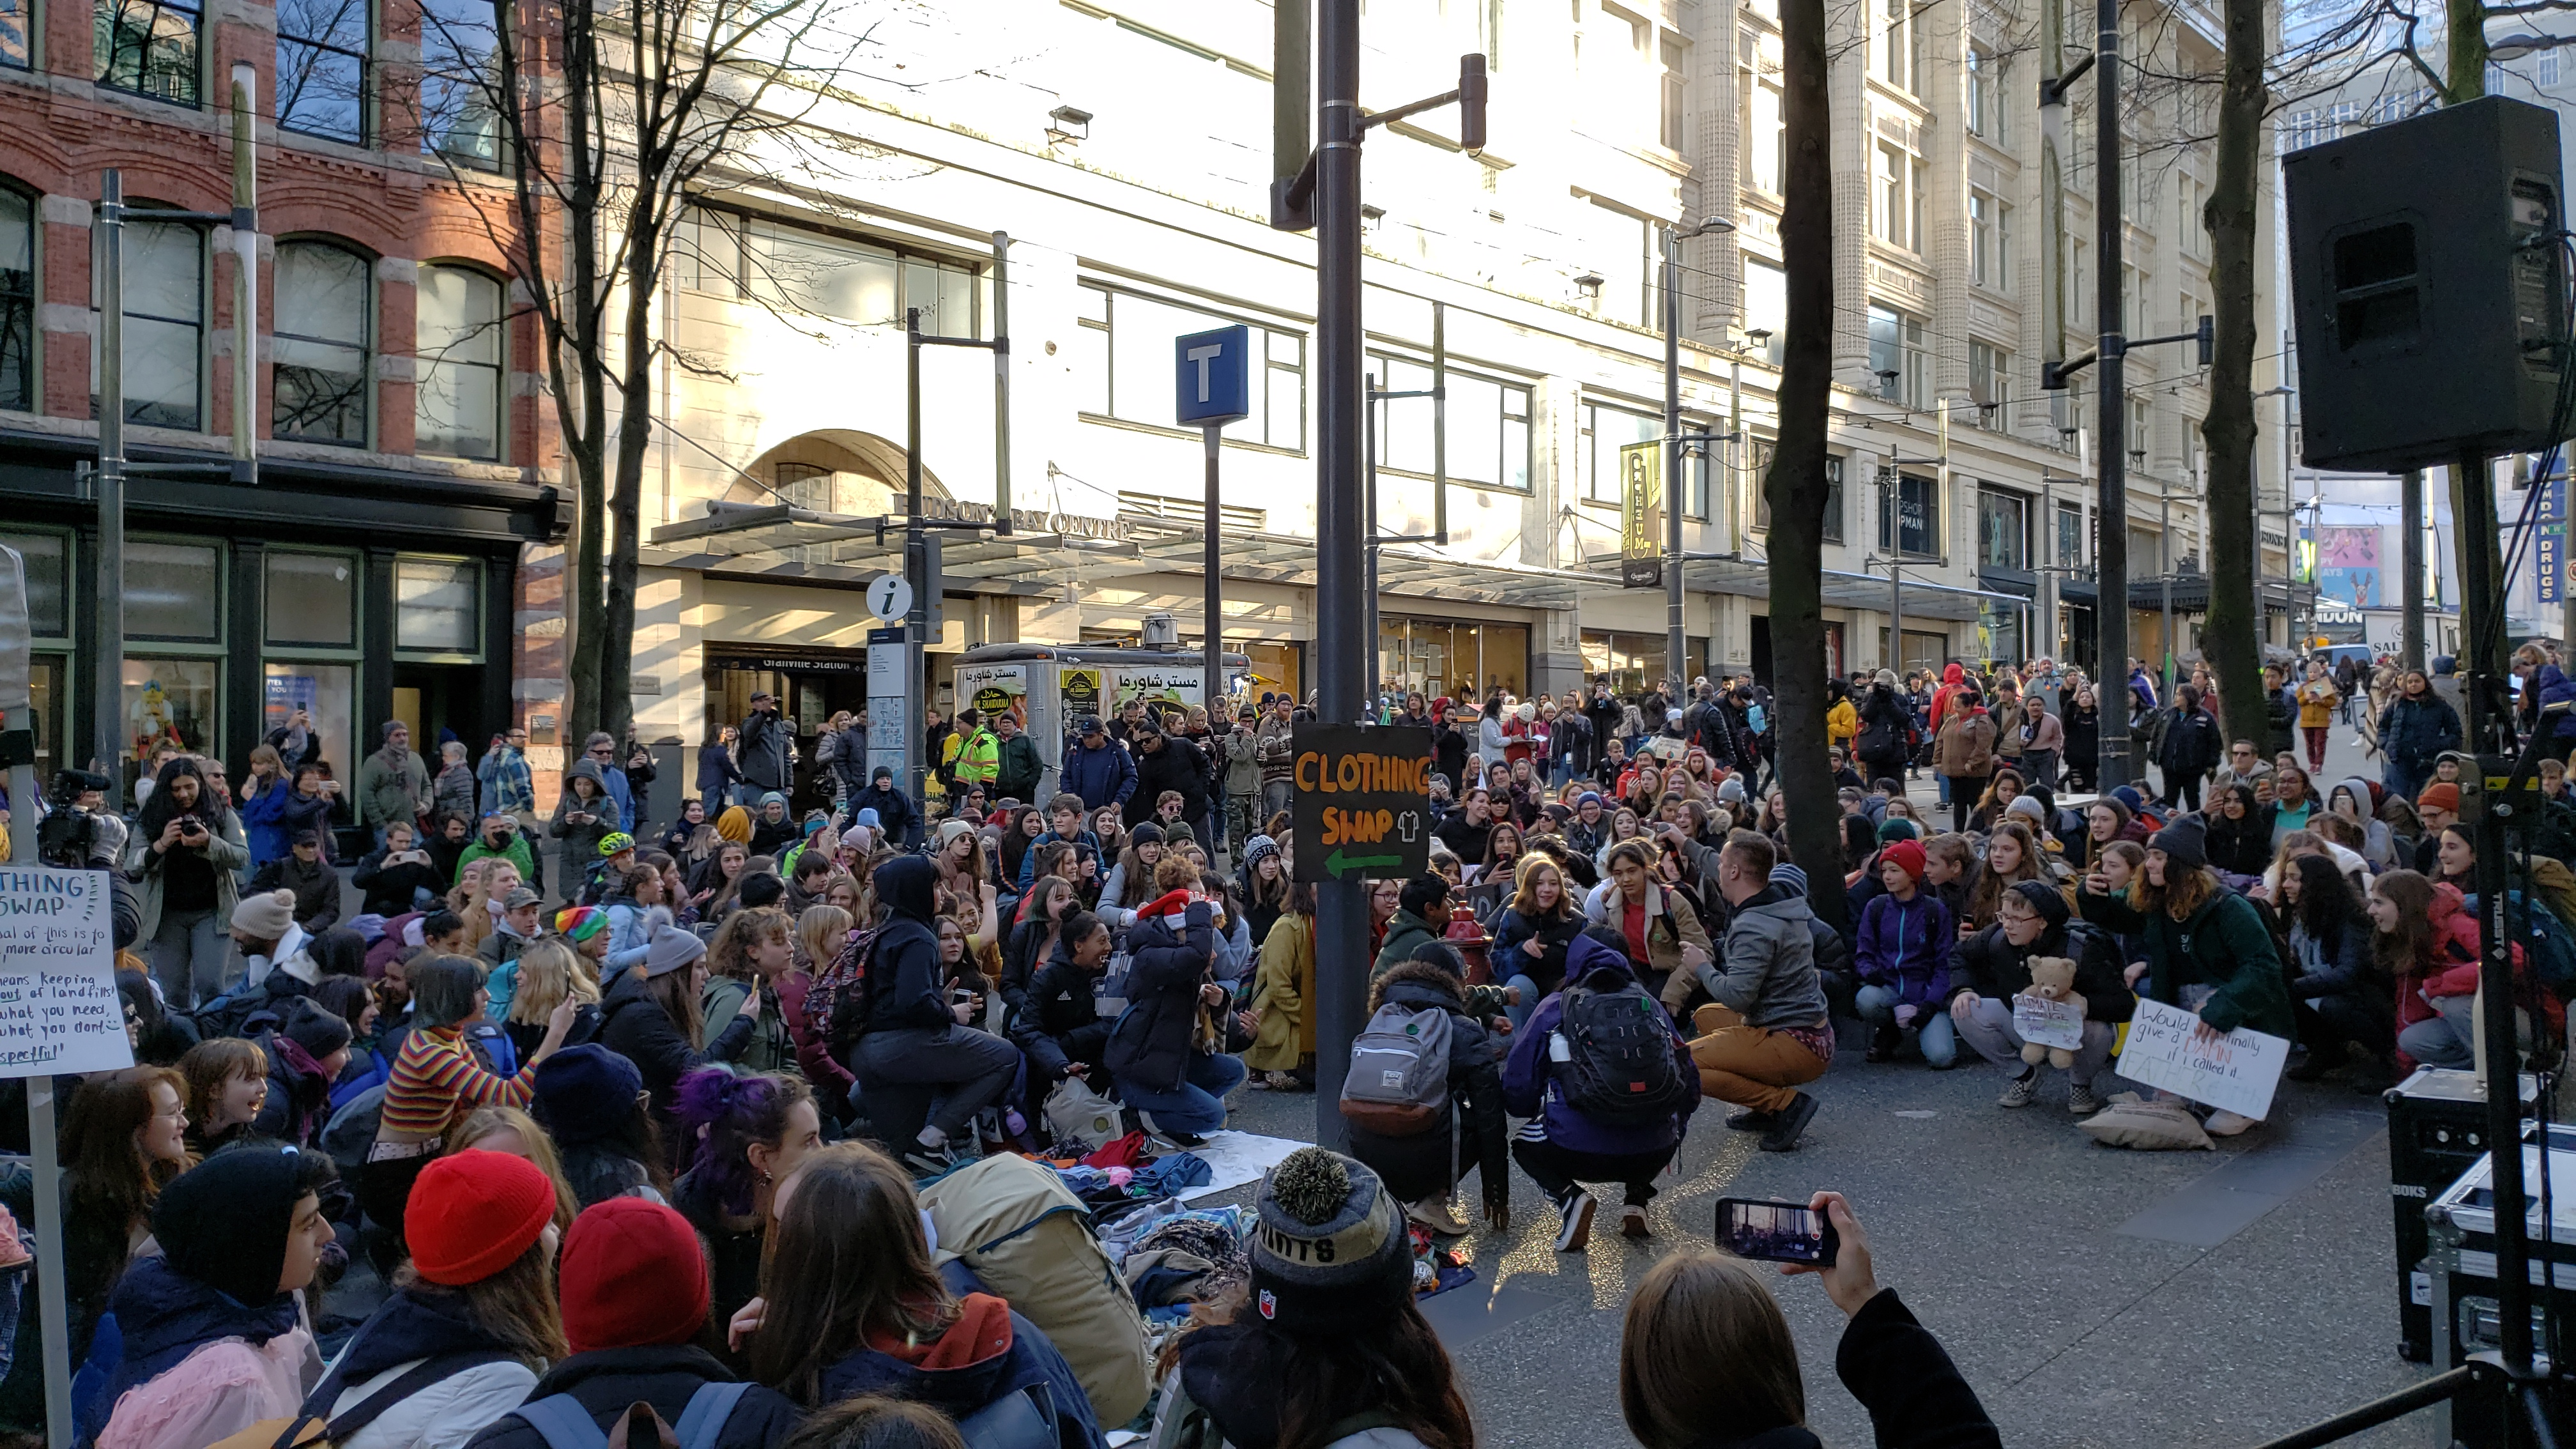 Vancouver teen climate group protests Black Friday shopping